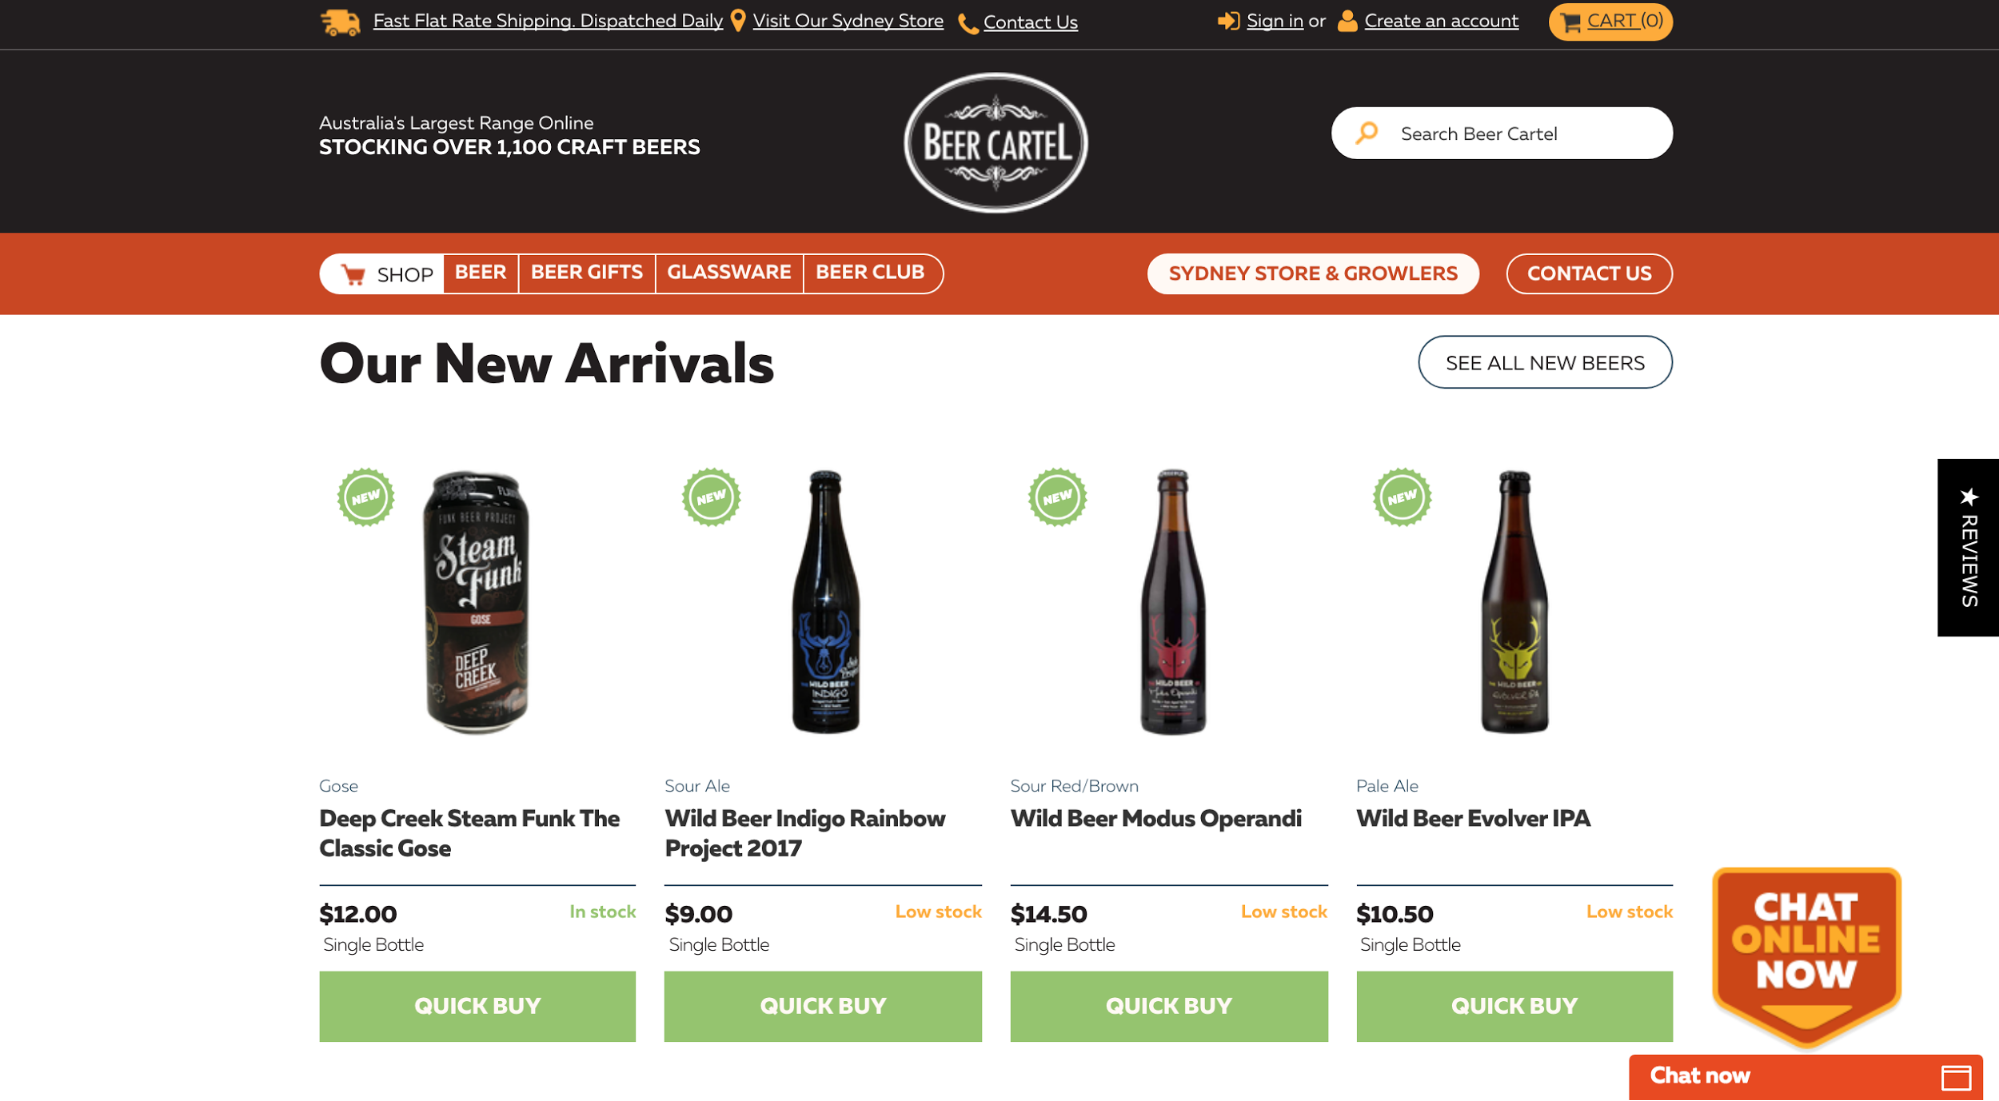 Screenshot showing new arrivals on an online liquor store